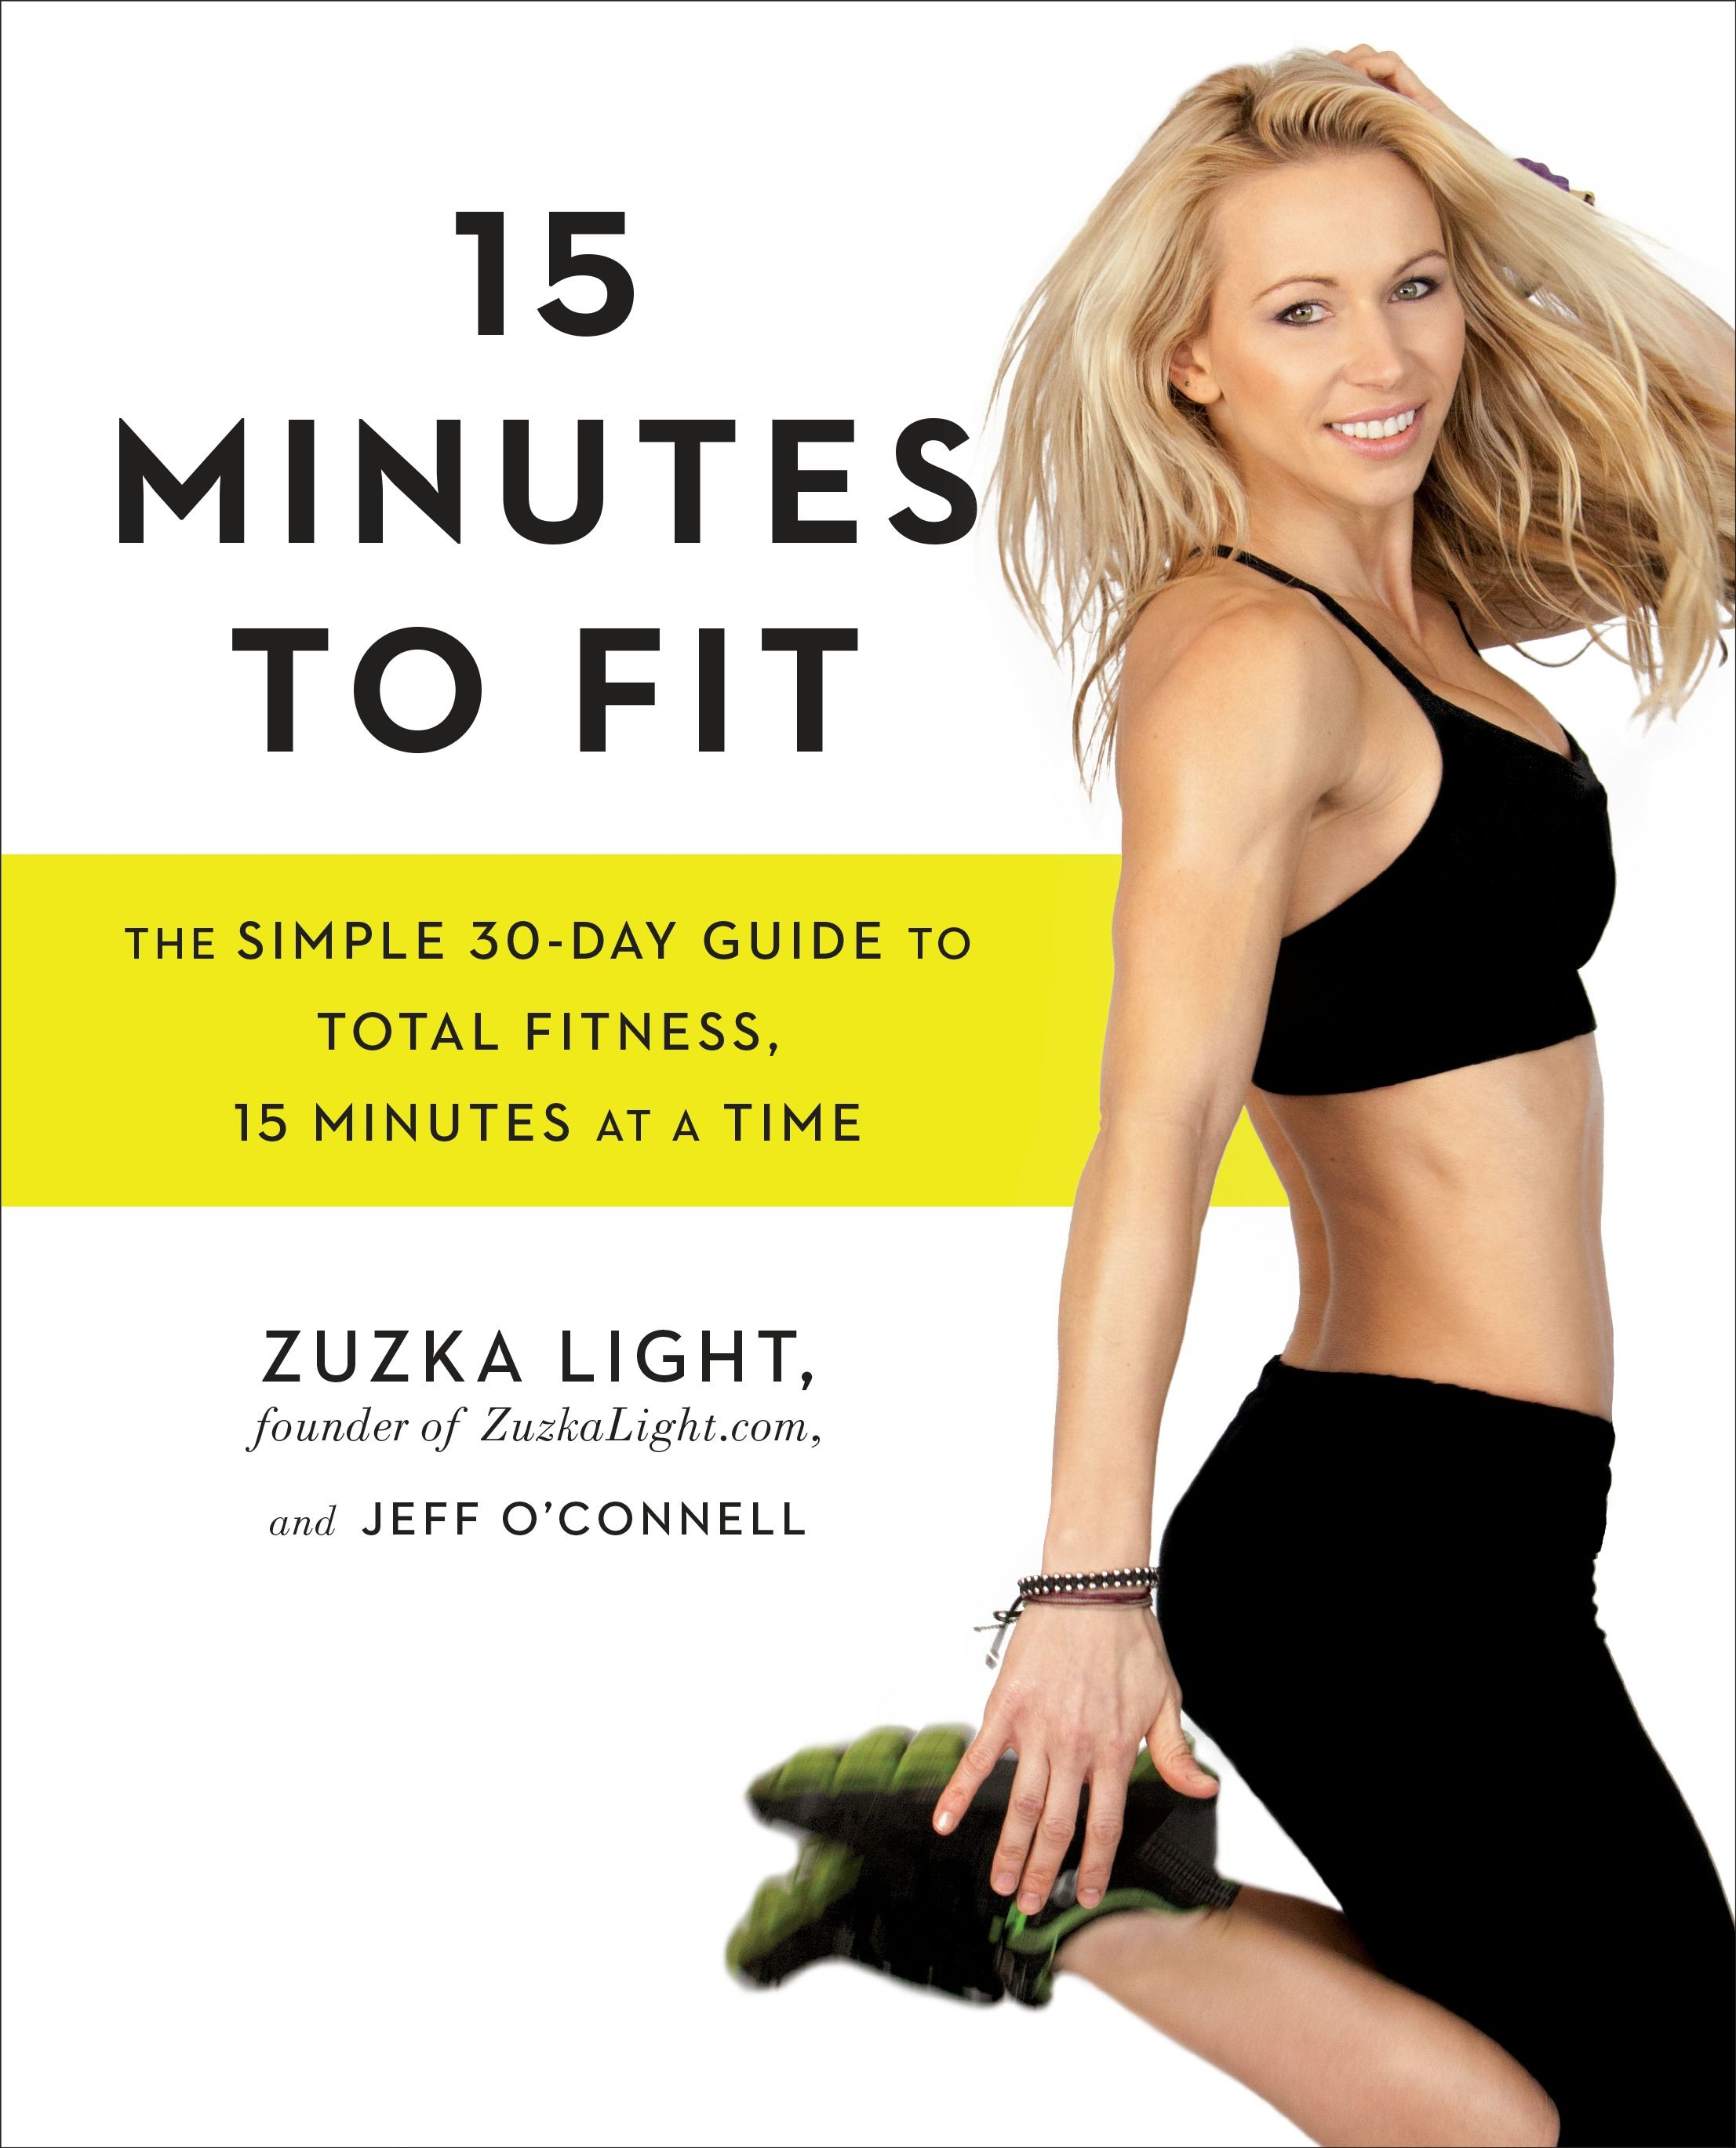 15 Minutes To Fit By Zuzka Light Jeff O Connell 9781583335826 Penguinrandomhouse Com Books In 2020 15 Minute Hiit Workout 15 Minute Workout Workout For Beginners